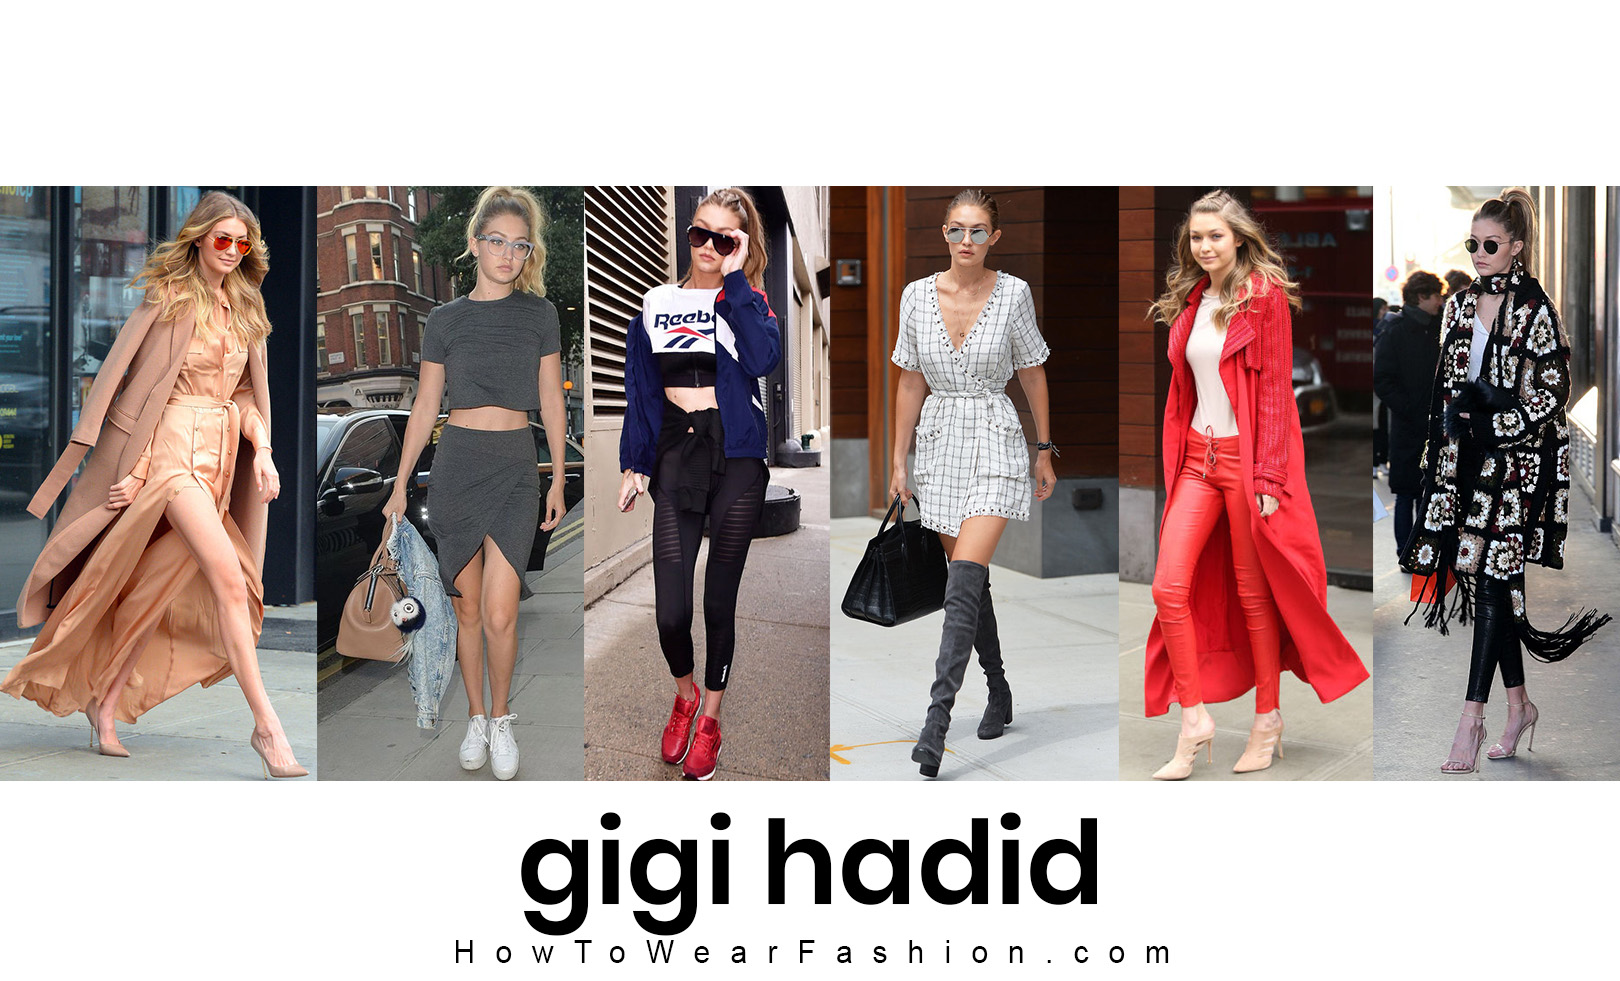 Gigi Hadid's fashion style! See all her best outfit looks here.